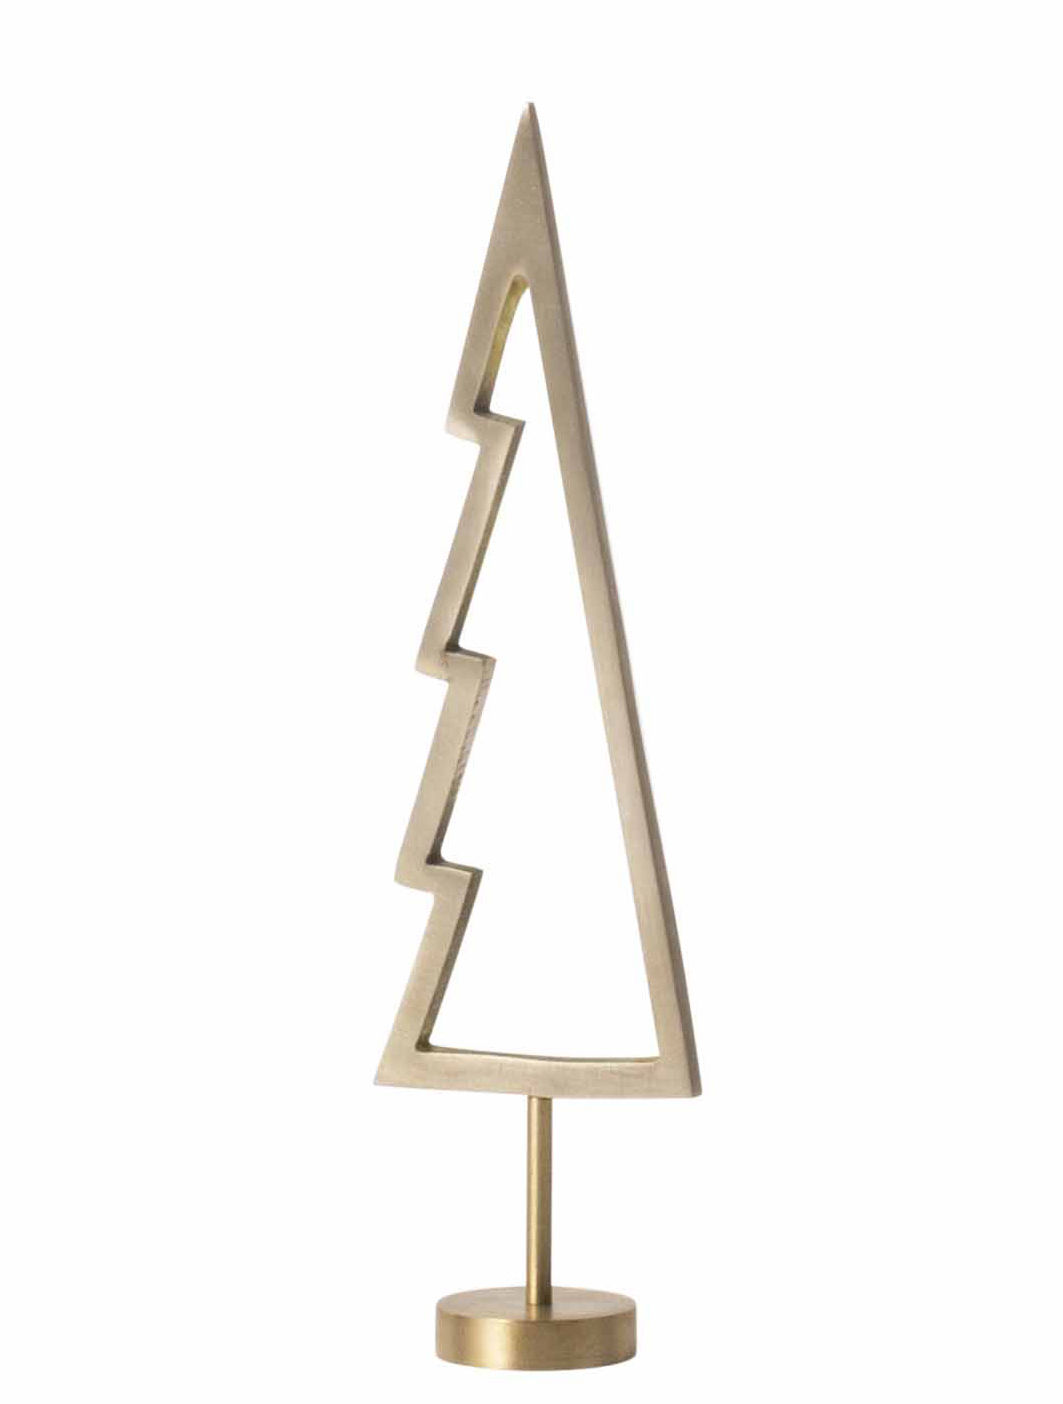 Decoration - Home Accessories - Tree Outline Christmas decoration - / Brass - H 18 cm by Ferm Living - Outline / Brass - Solid brass